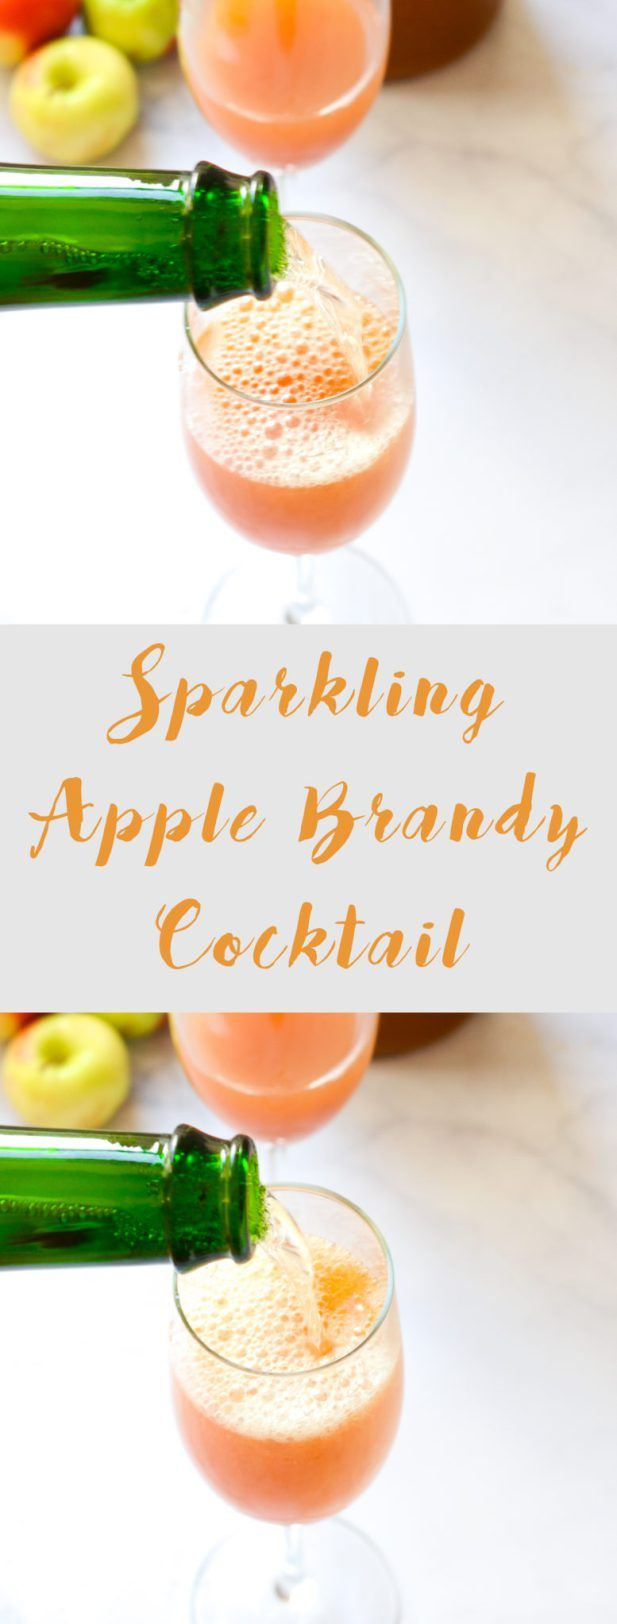 This Sparkling Apple Brandy Cocktail is the perfect soul-warming night cap for chilly fall evenings. Via @mymoderncookery #mymoderncookery